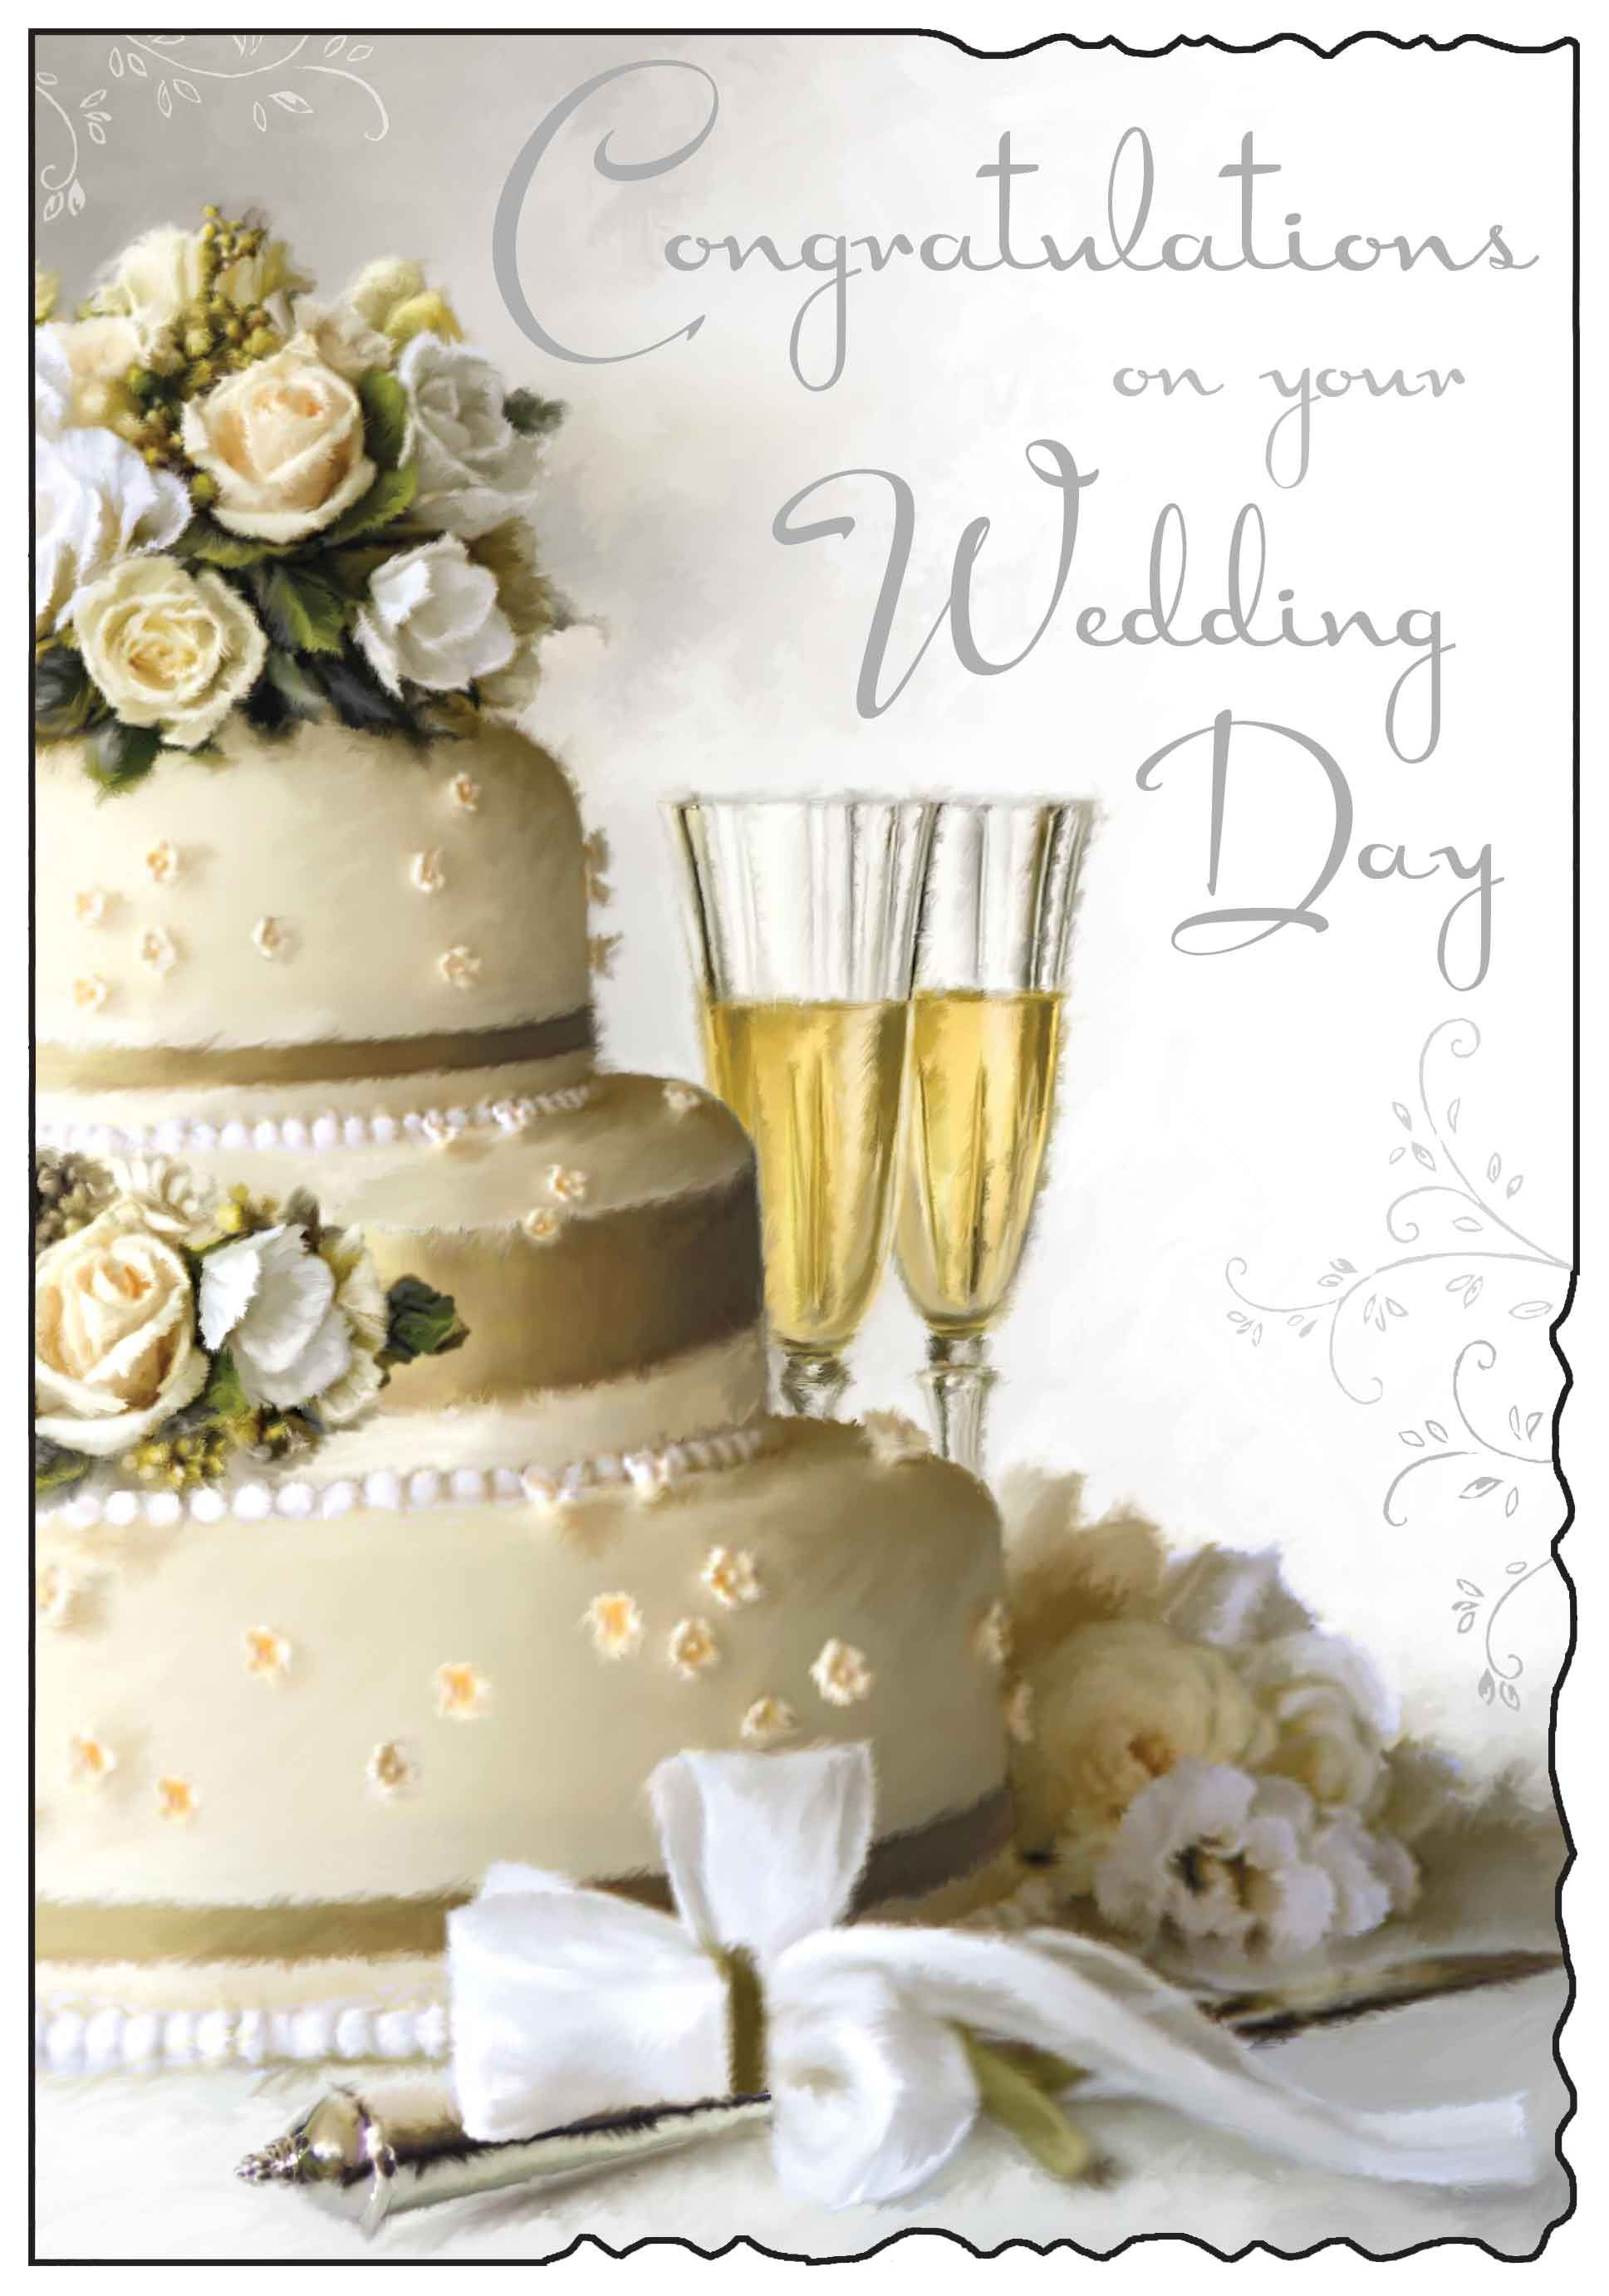 Congratulations on your wedding day card. Wedding